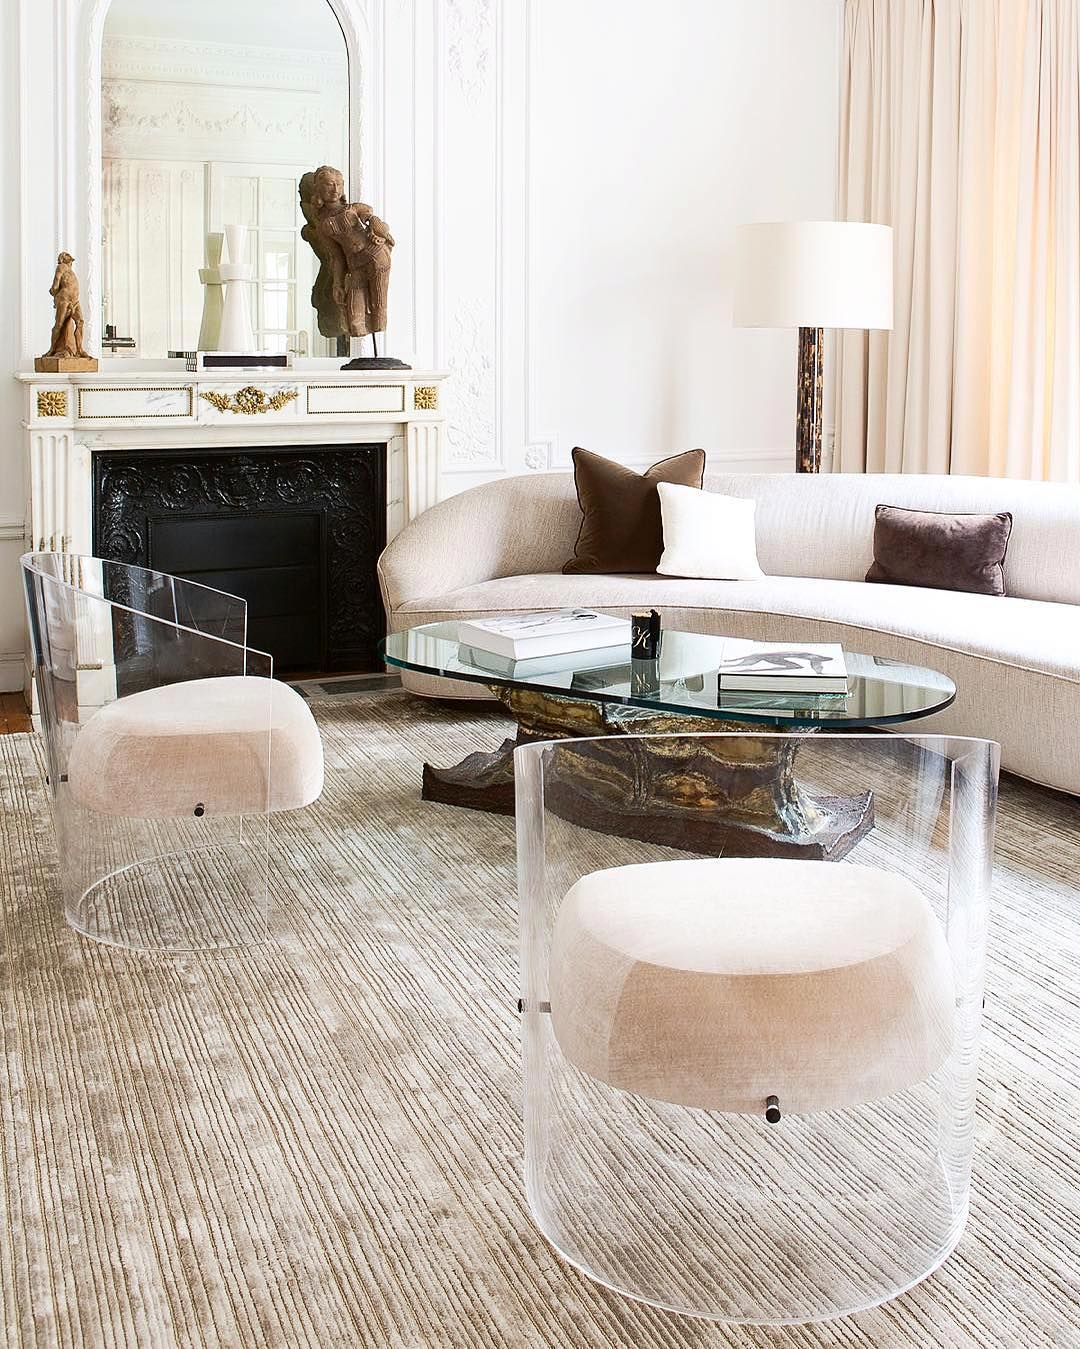 These Fab Chairs Are Especially Ideal For A Small Space As They